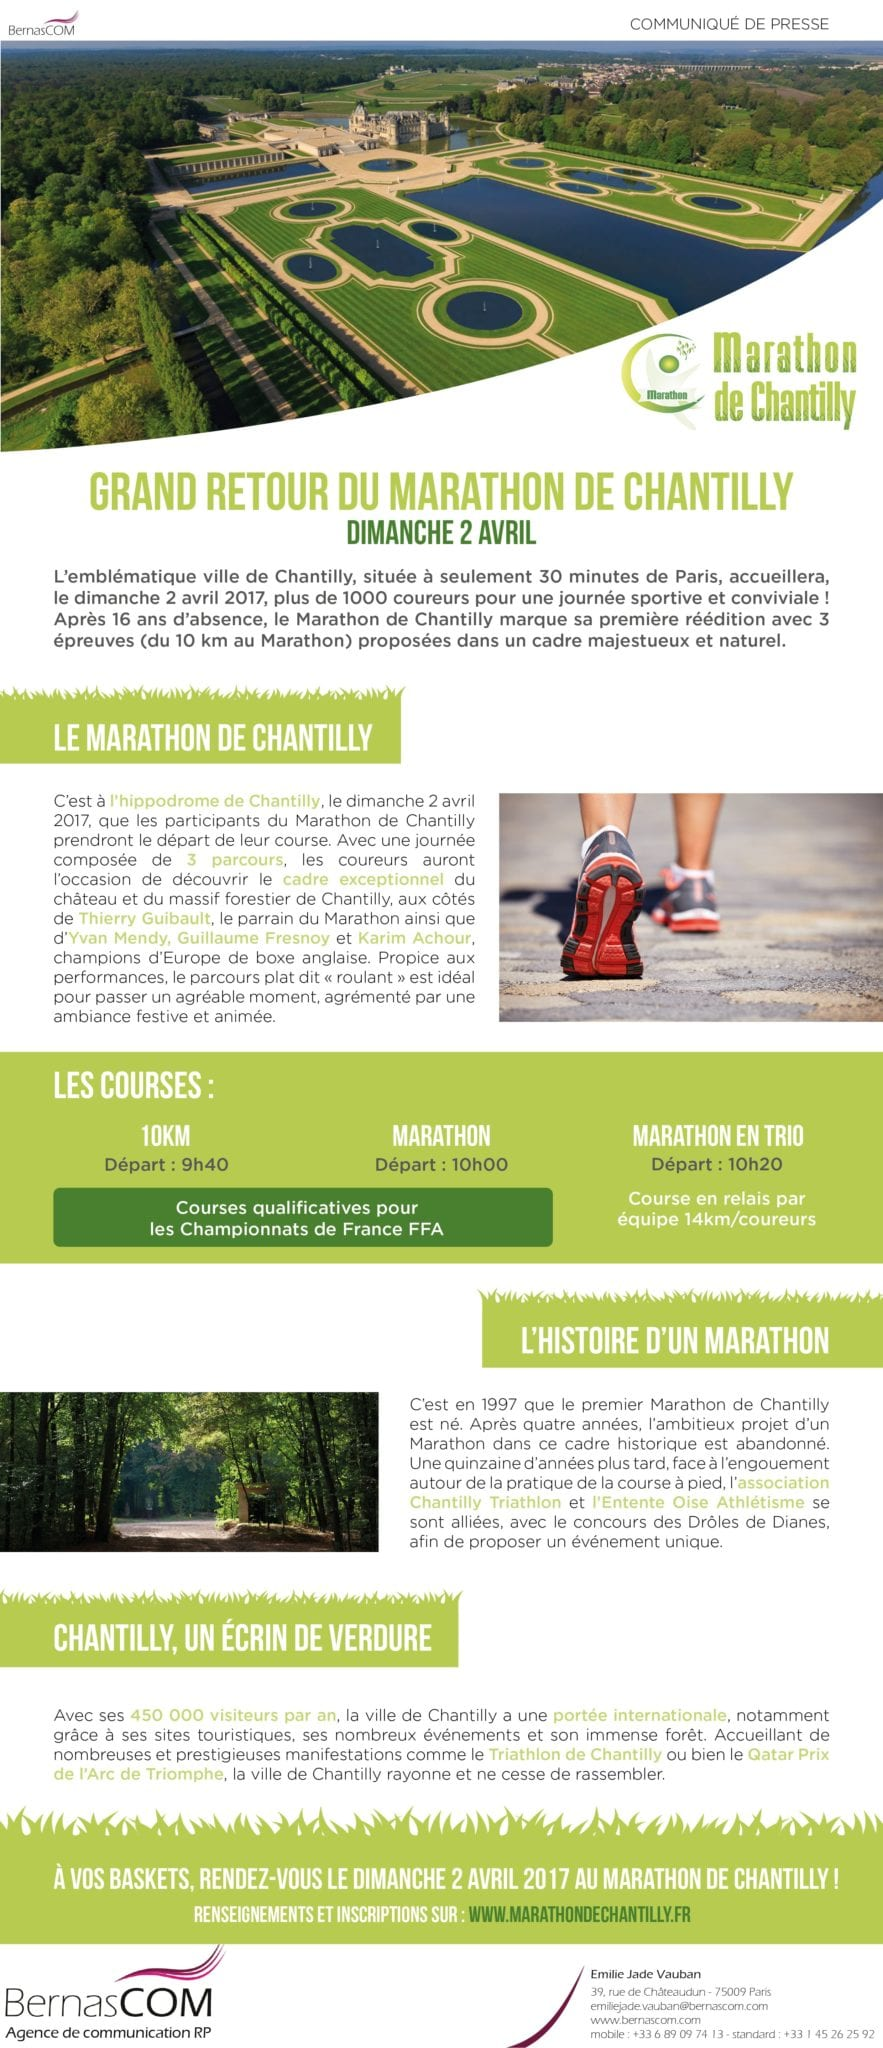 CP_Marathon de chantilly